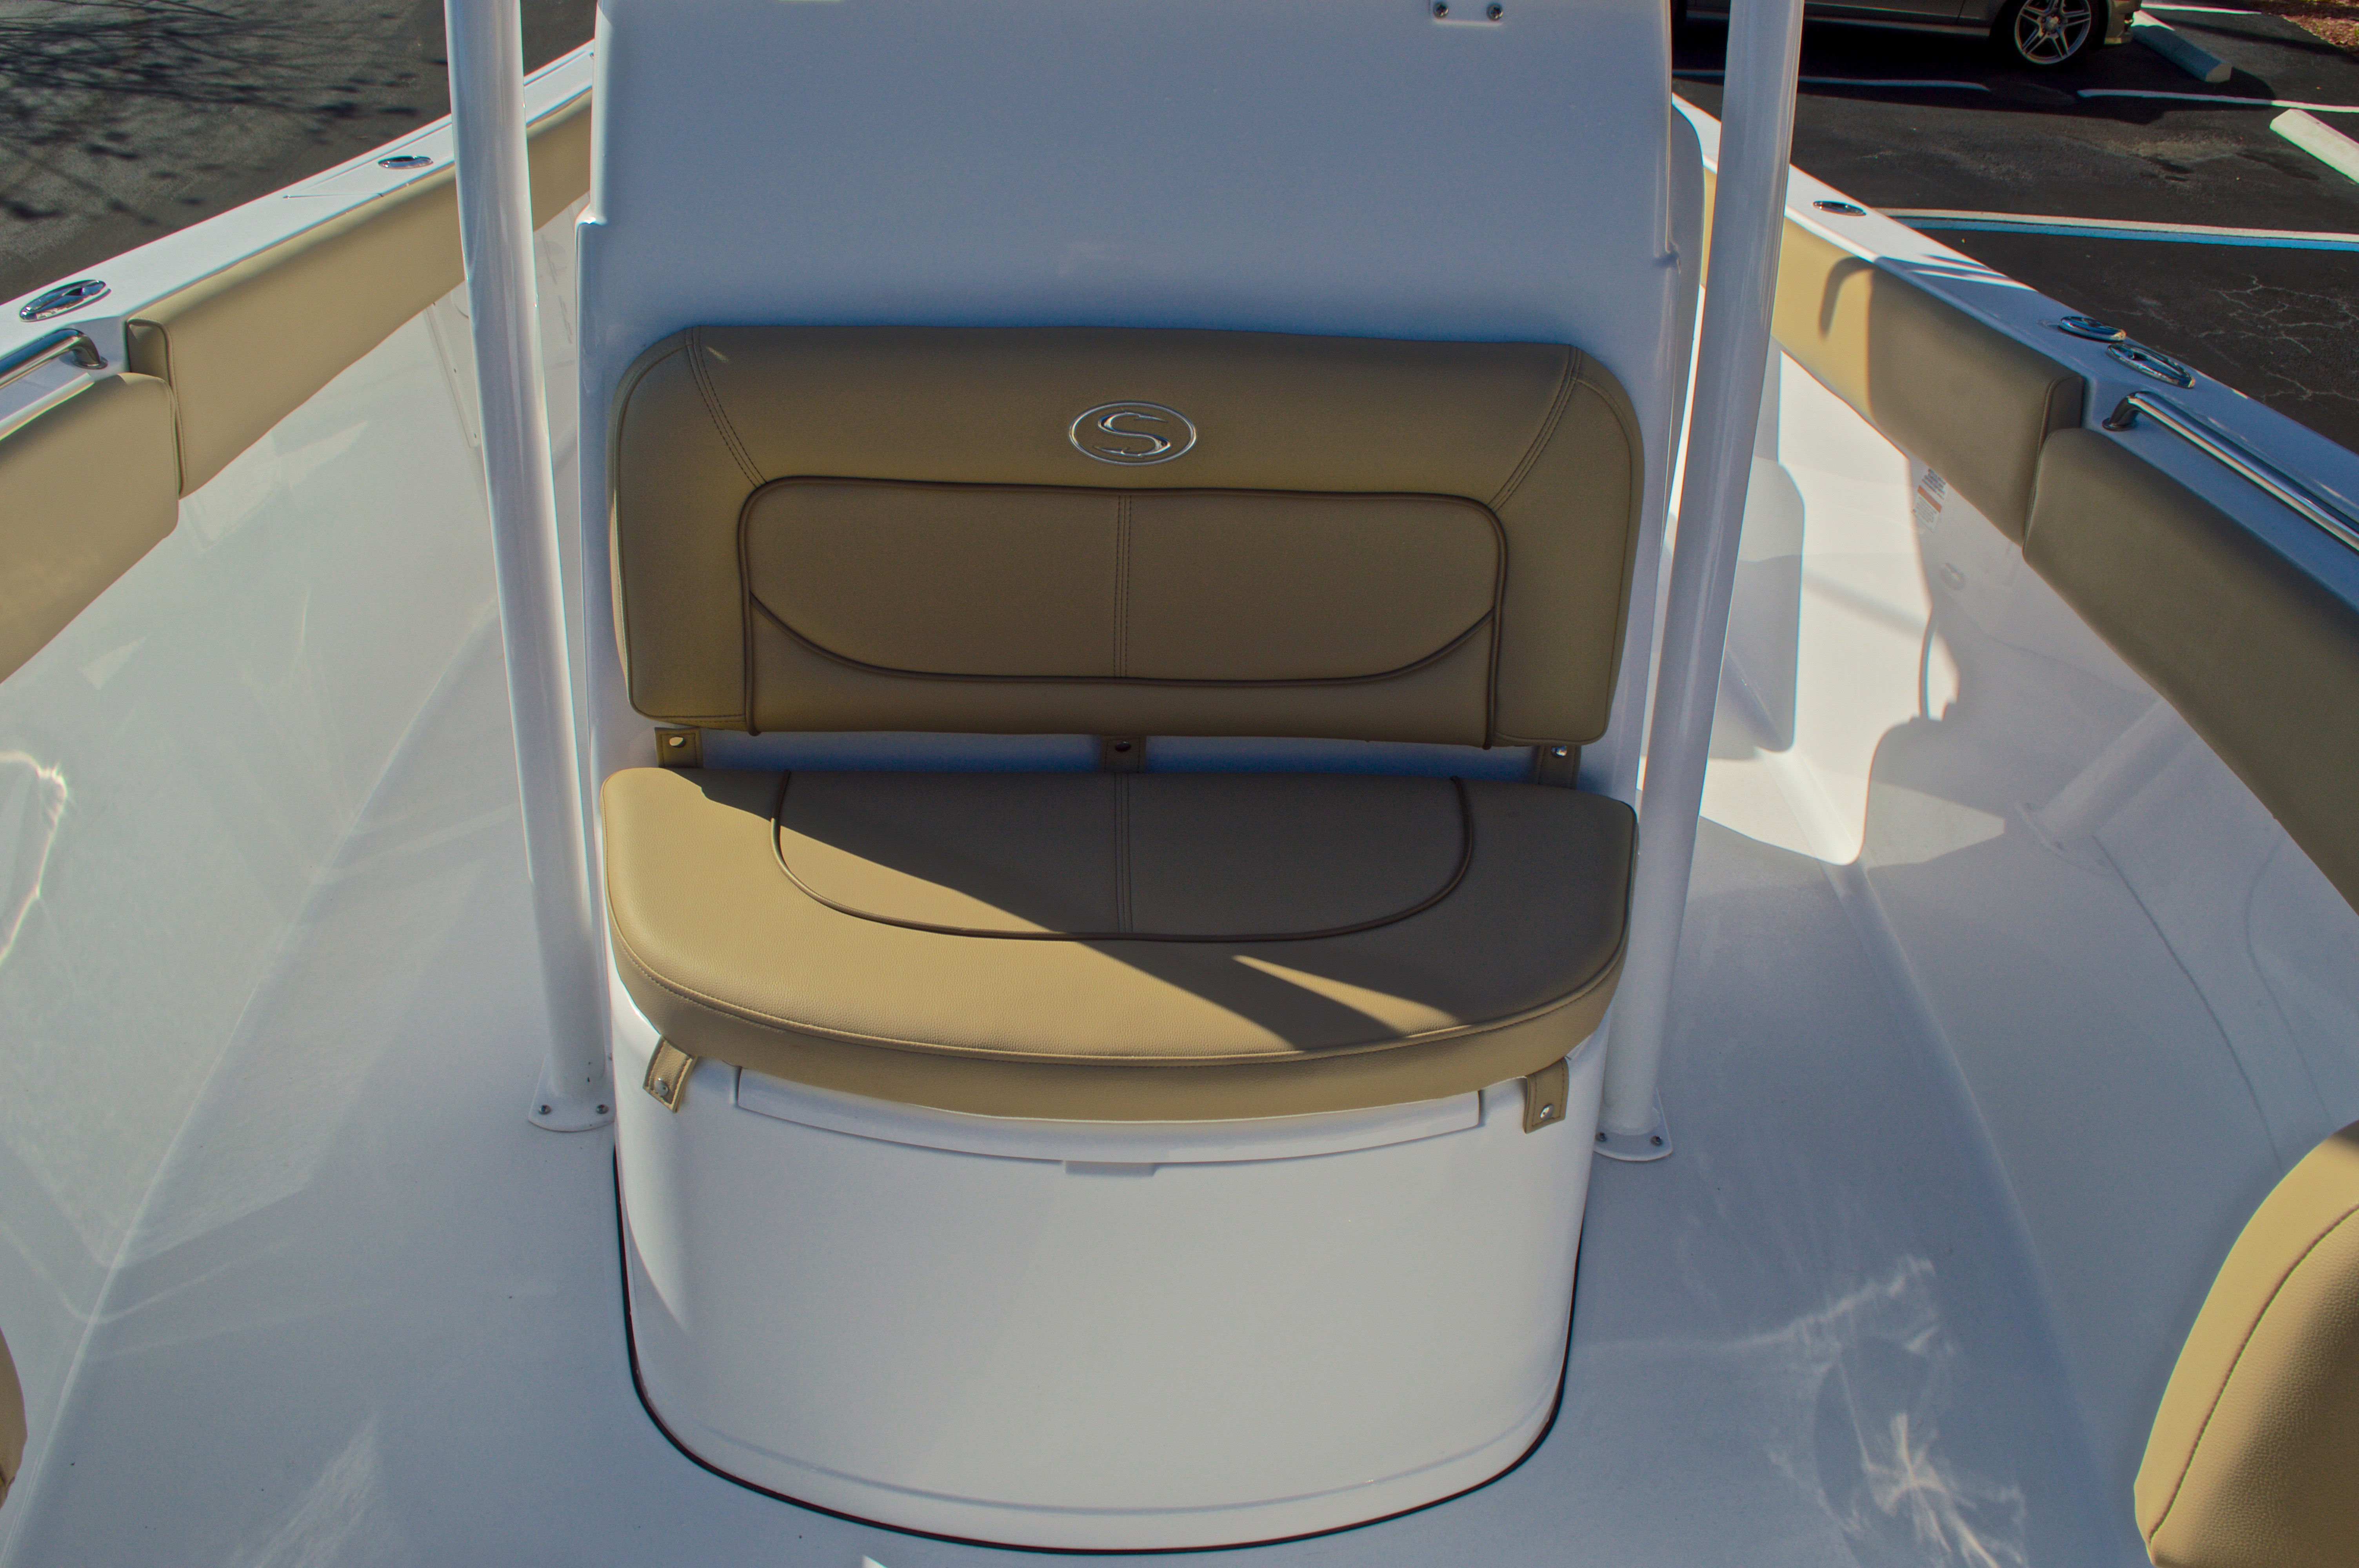 Thumbnail 51 for New 2016 Sportsman Heritage 251 Center Console boat for sale in West Palm Beach, FL